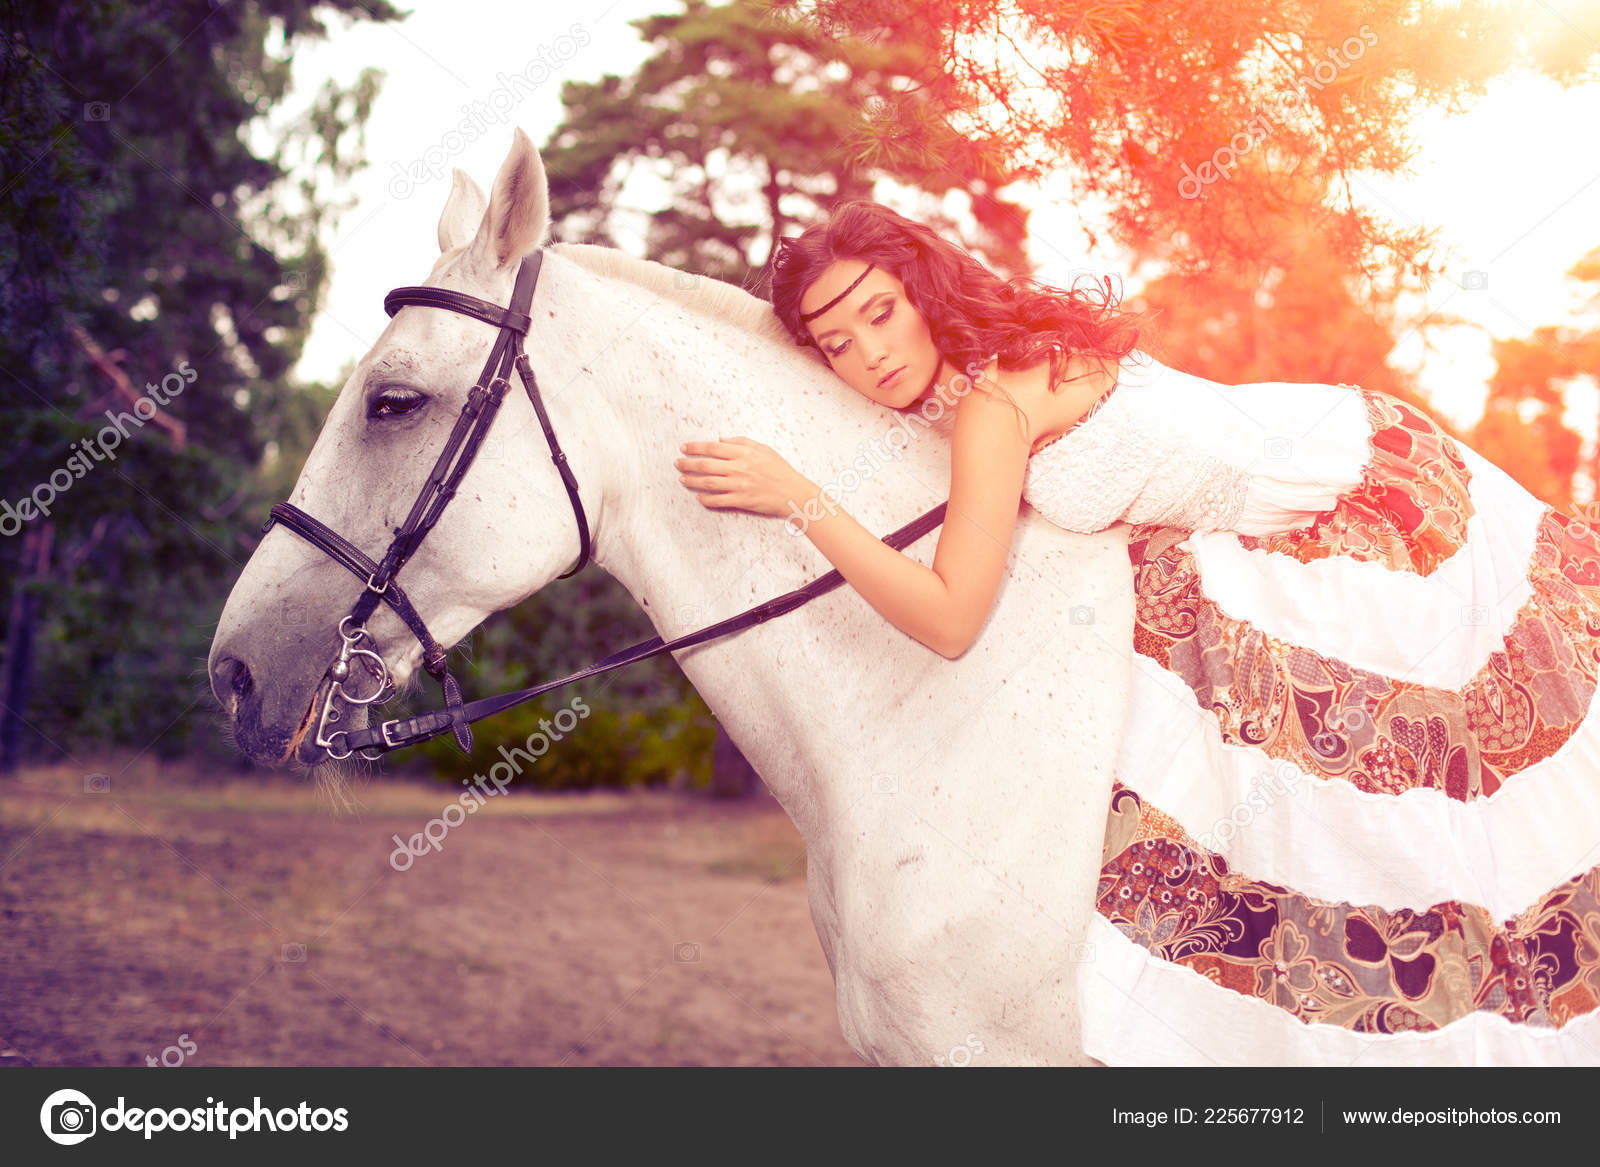 Beautiful Woman Horse Horseback Rider Woman Riding Horse Stock Photo C Miramiska 225677912